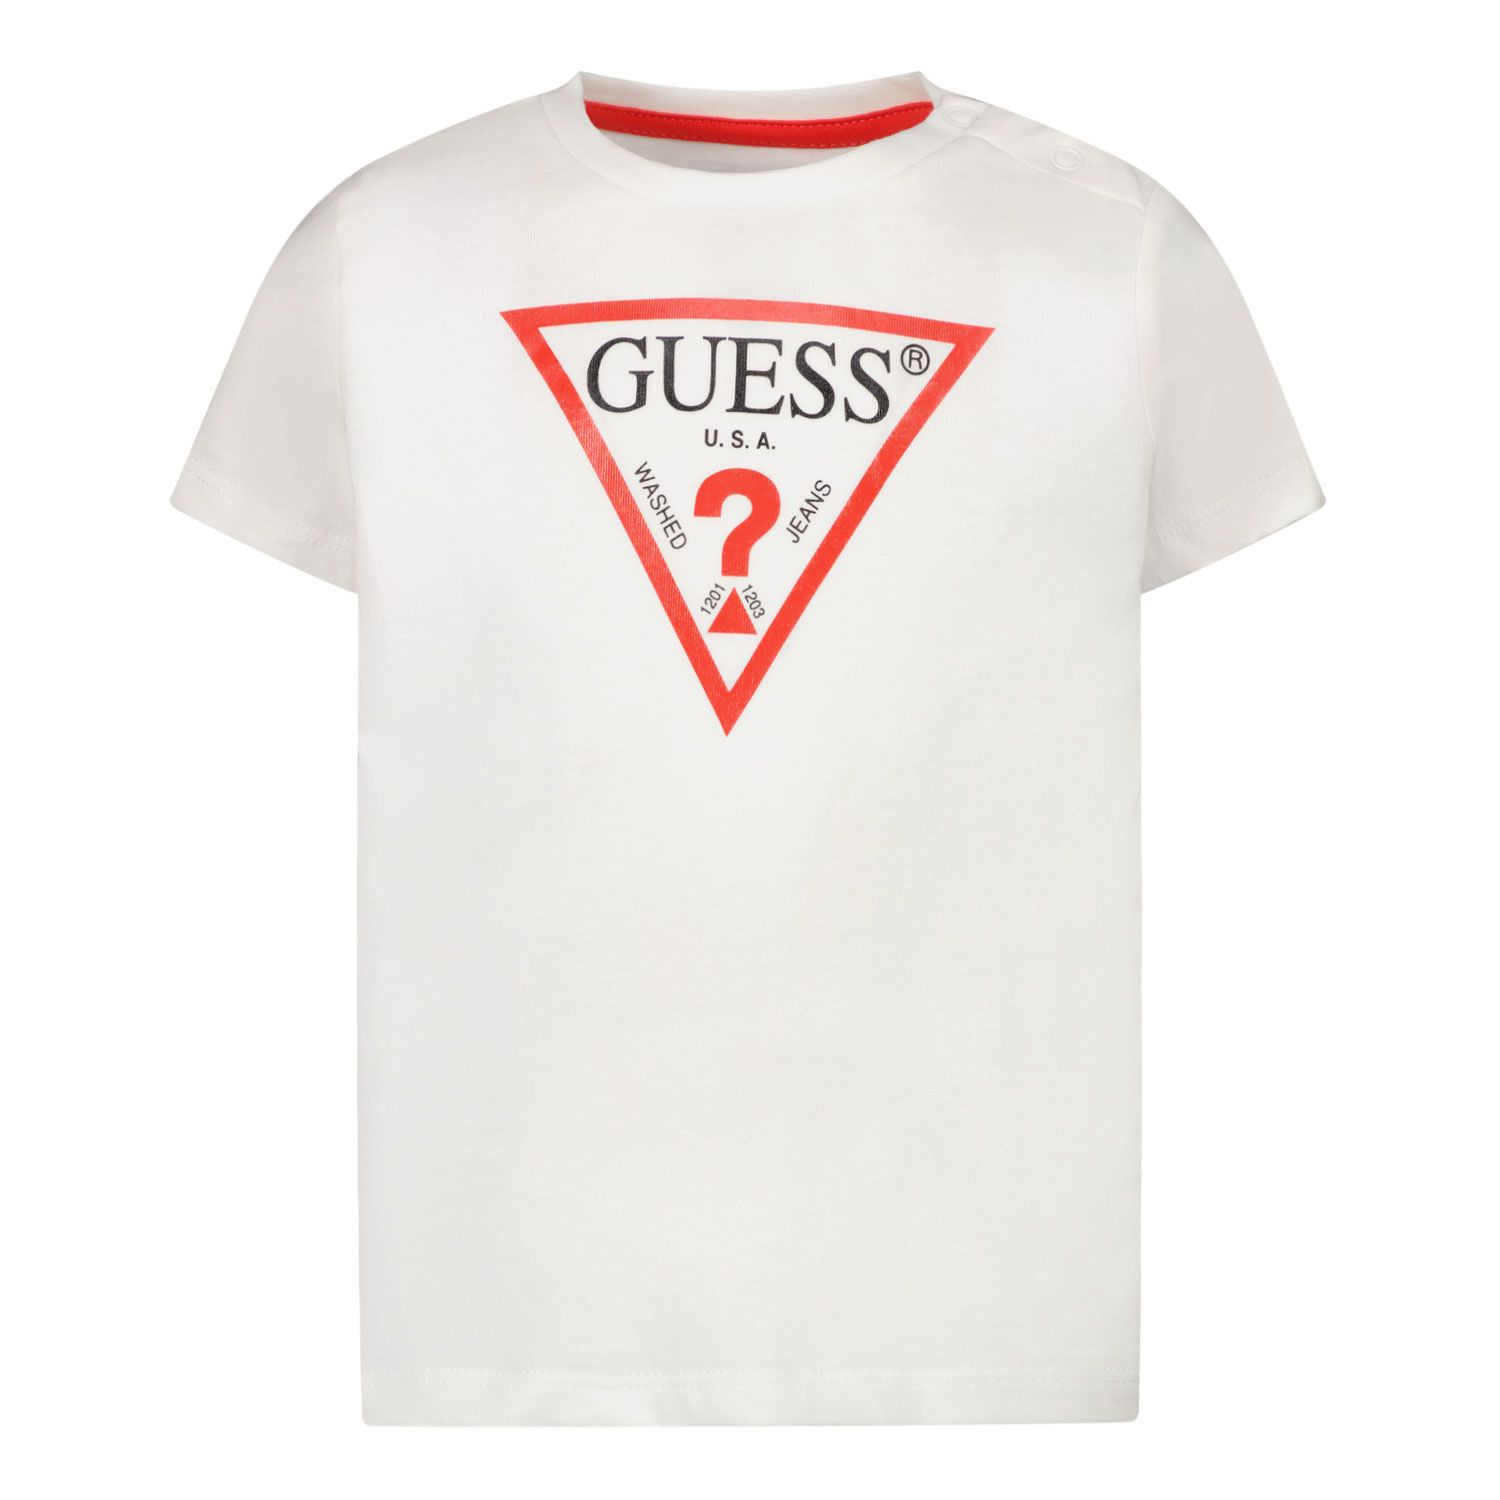 Afbeelding van Guess I91I11 baby t-shirt wit